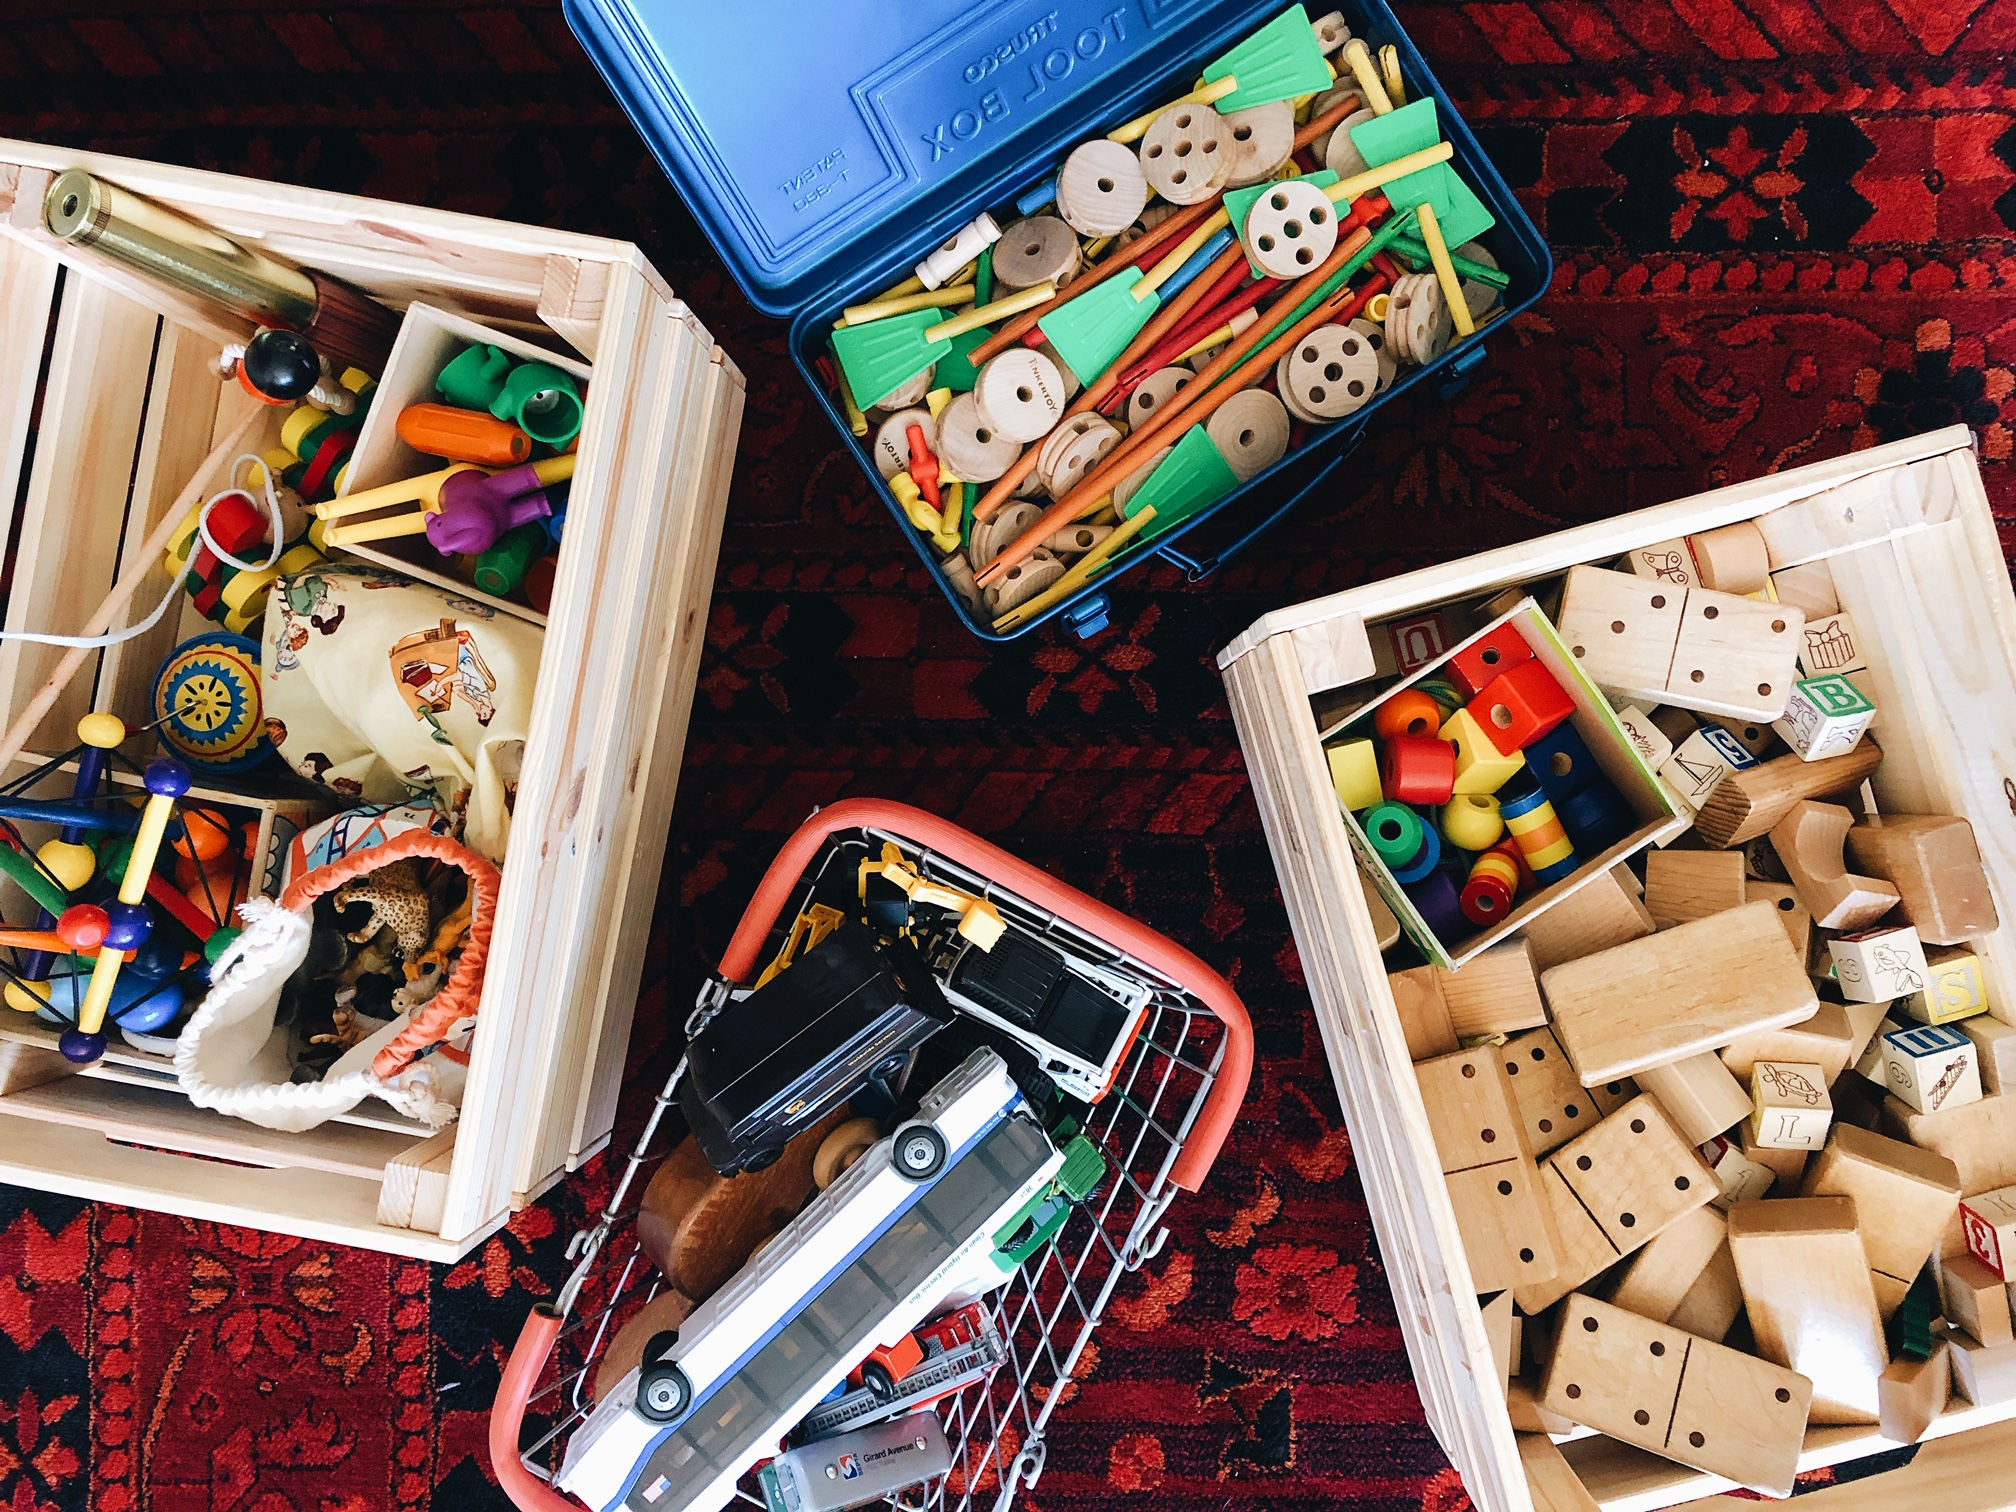 Toy Storage and Organization in a Small Space.  @mandalynrael